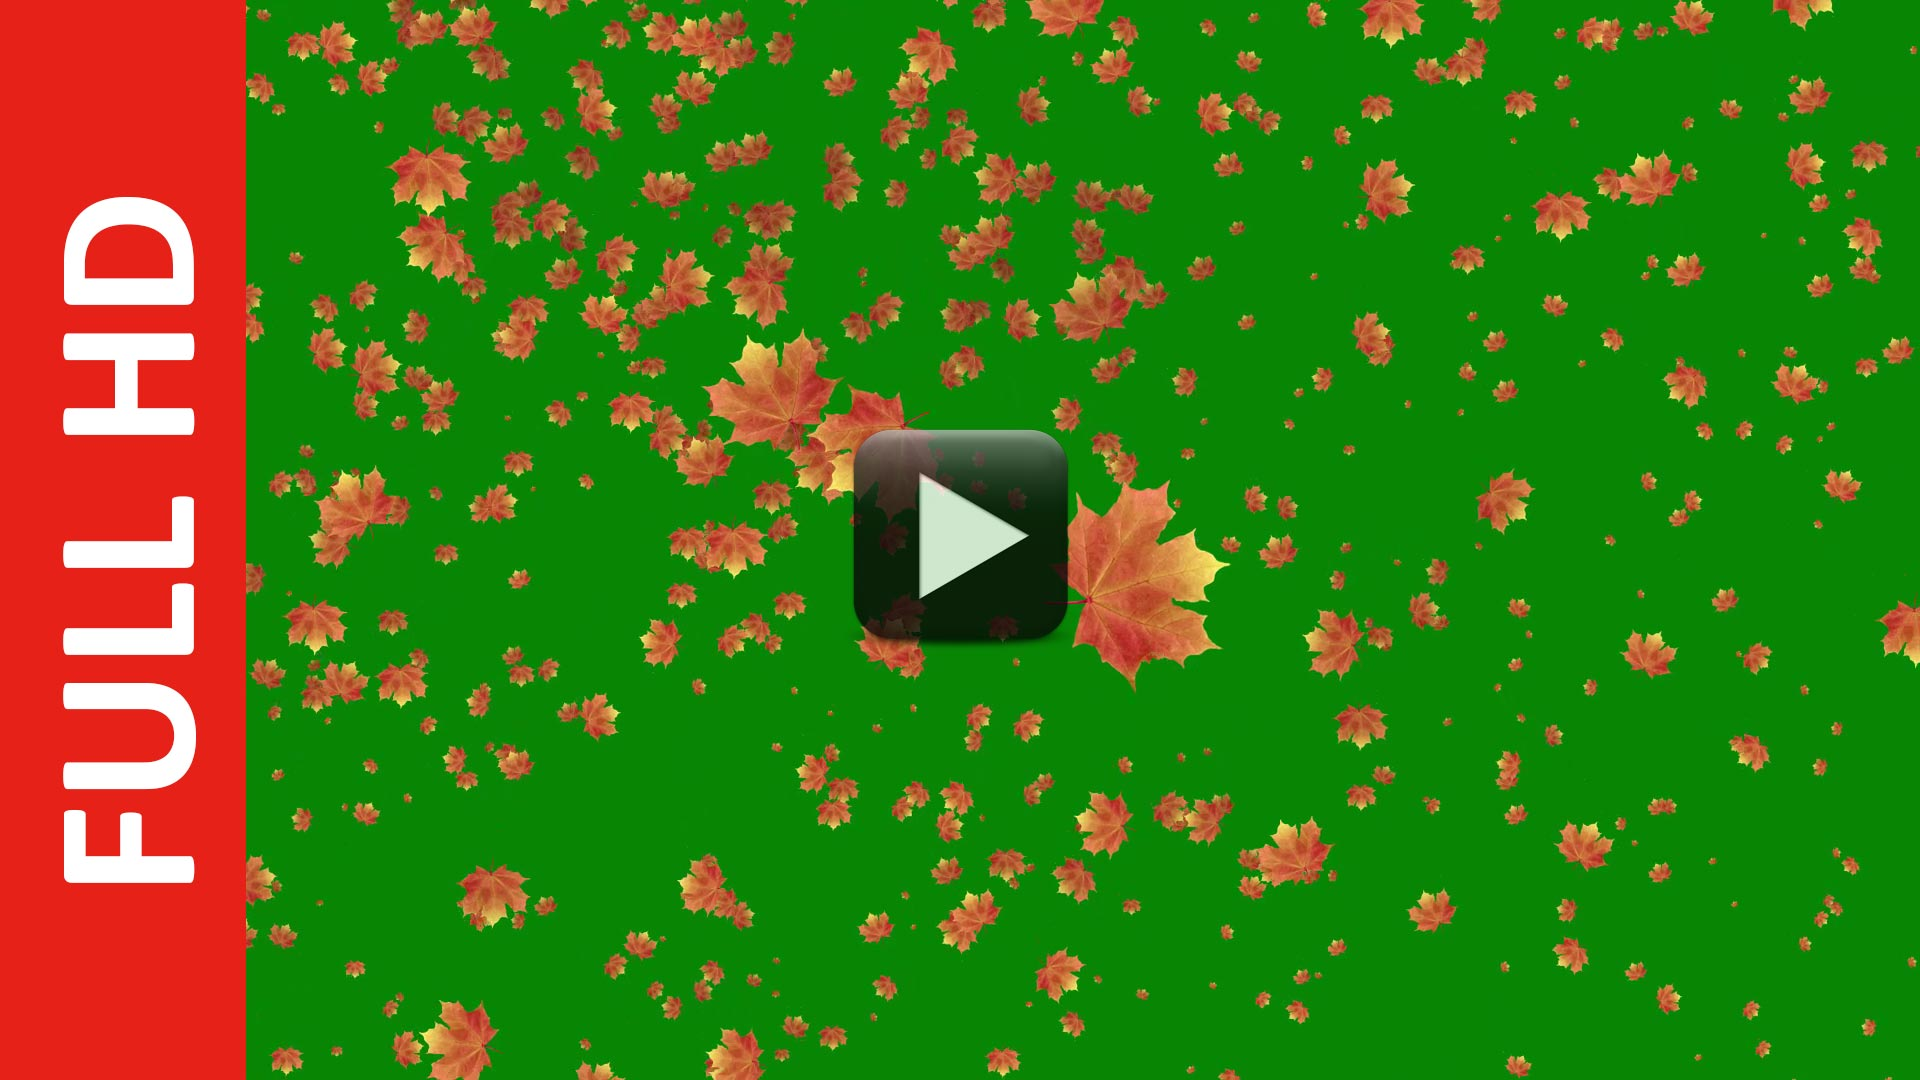 Autumn Leaves Falling Green Screen Royalty Free All Design Creative